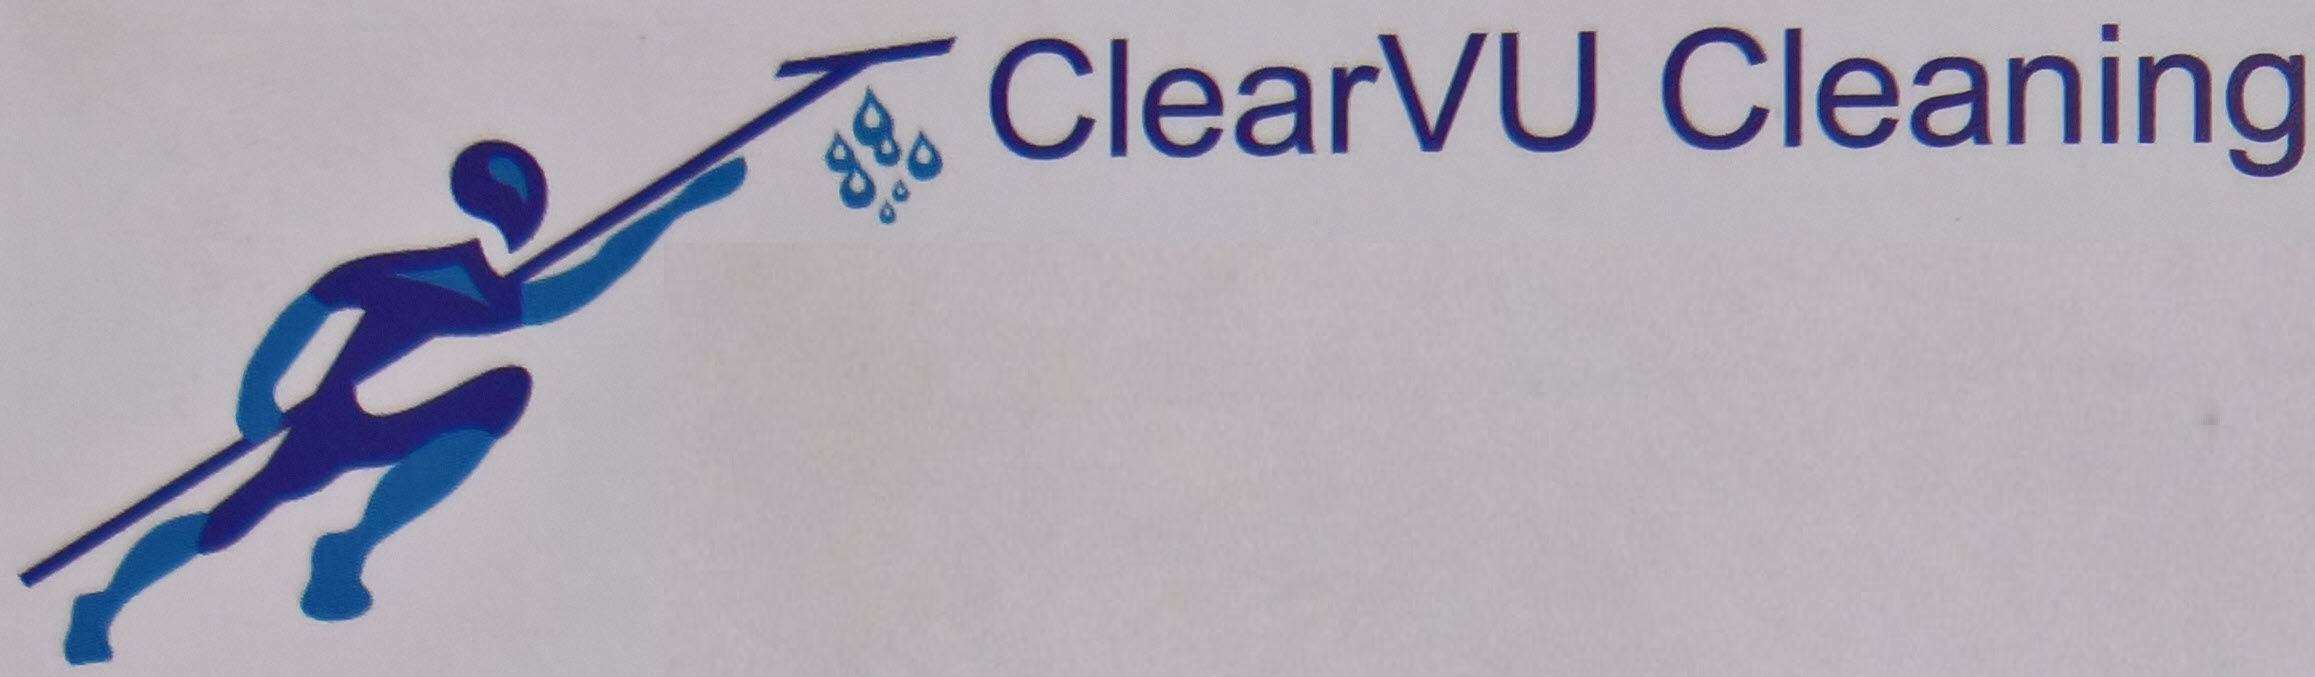 ClearVU Cleaning Logo